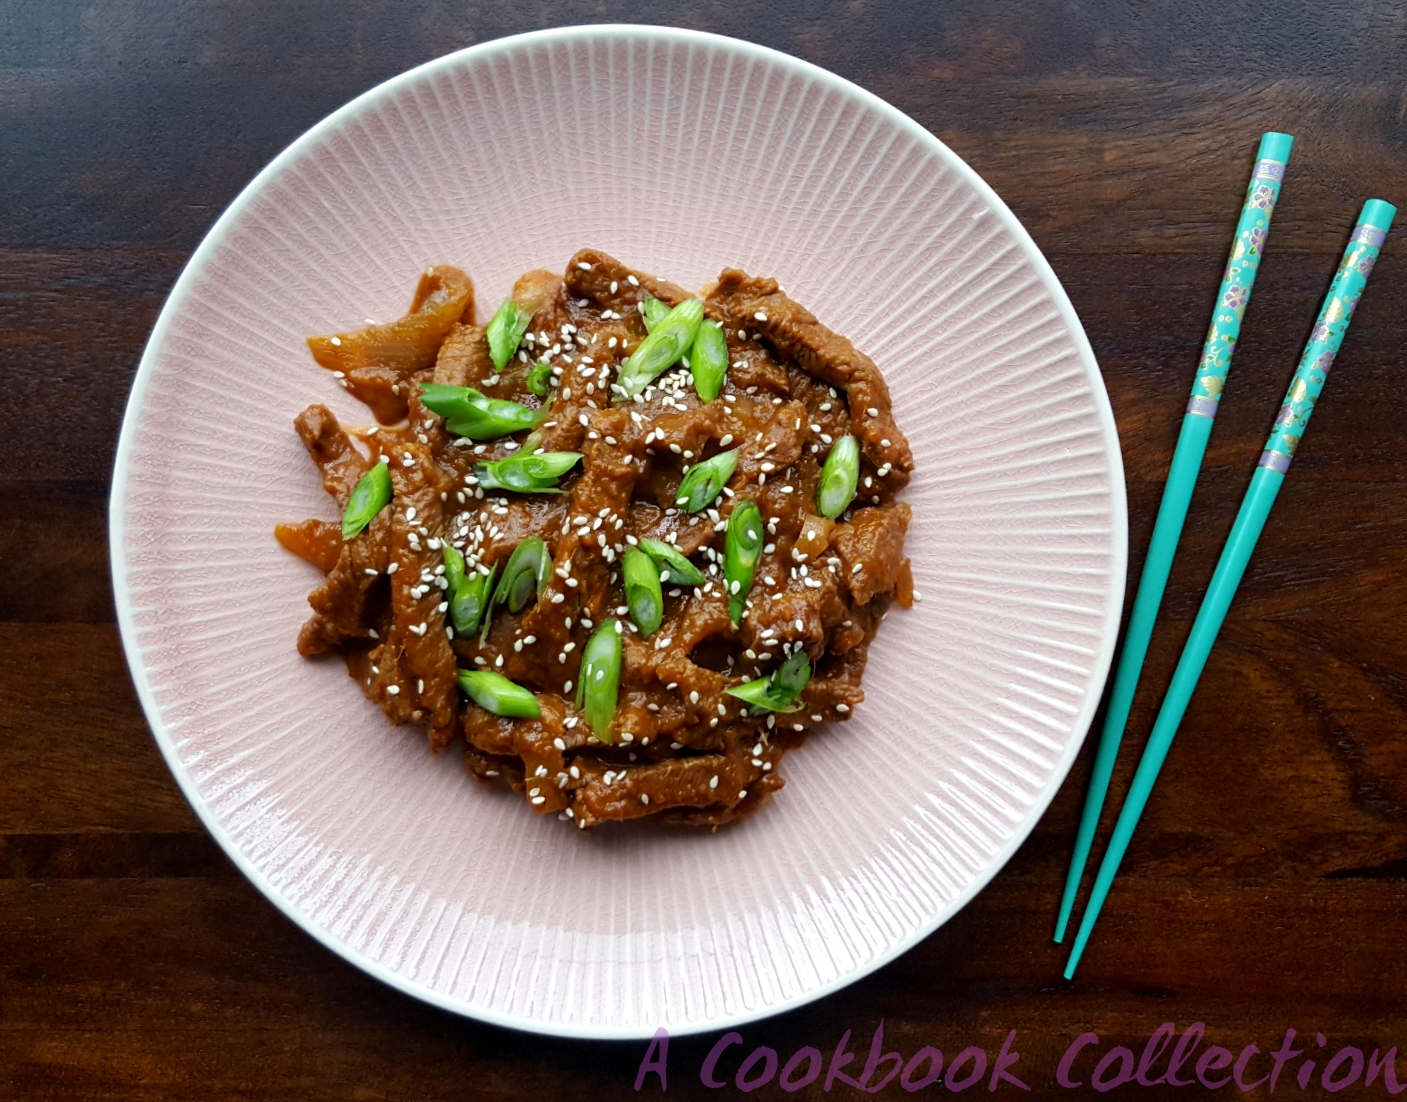 Korean Stir Fried Beef Bulgogi - A Cookbook Collection